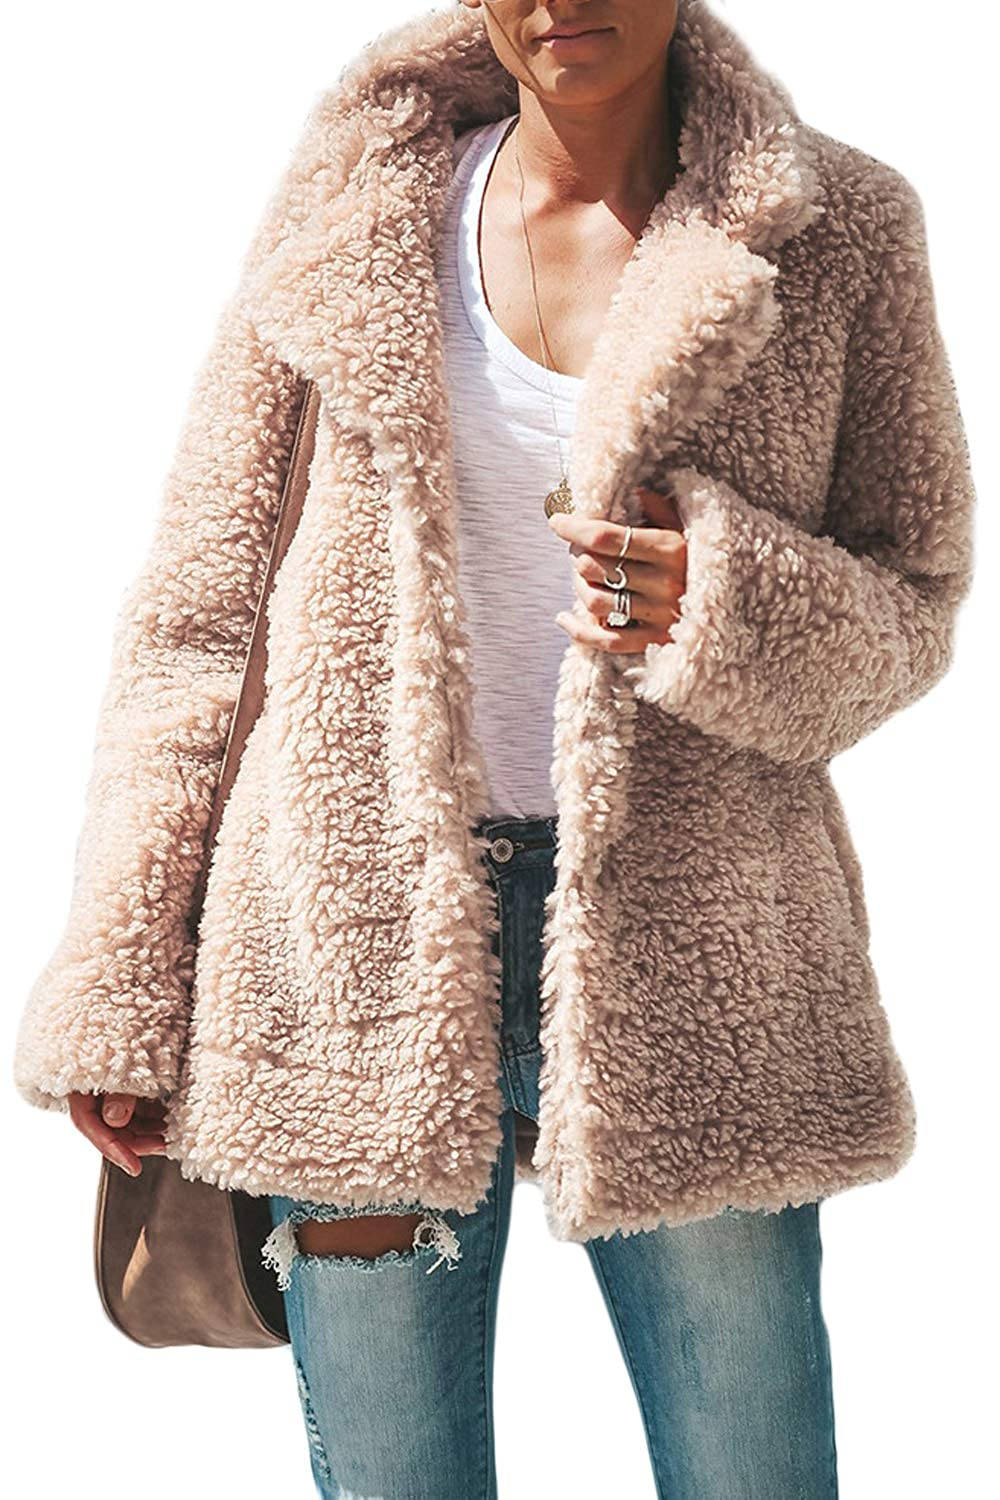 Fasumava Women Fuzzy Coat Winter Casual Collared Thick Front Open Outerwear